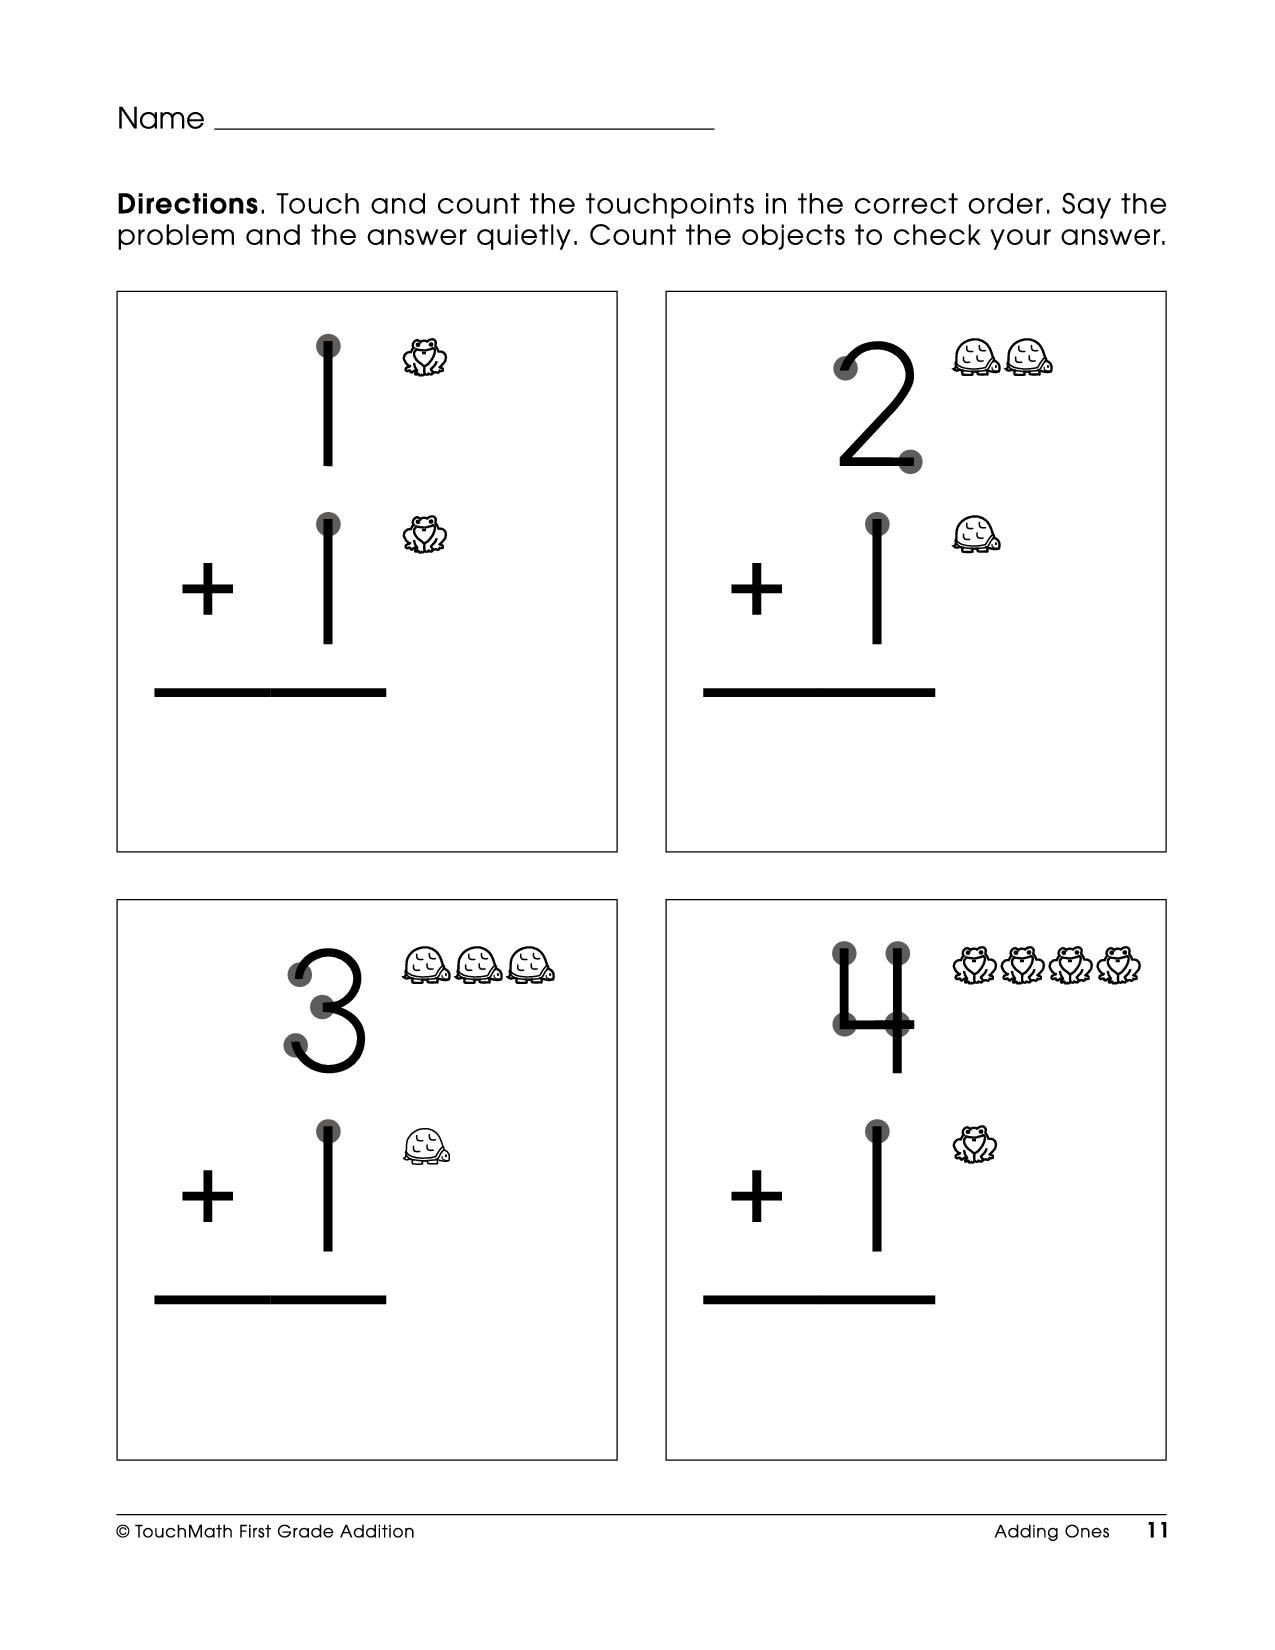 Touch Point Math Worksheets Free Printable touchpoint Math Worksheets